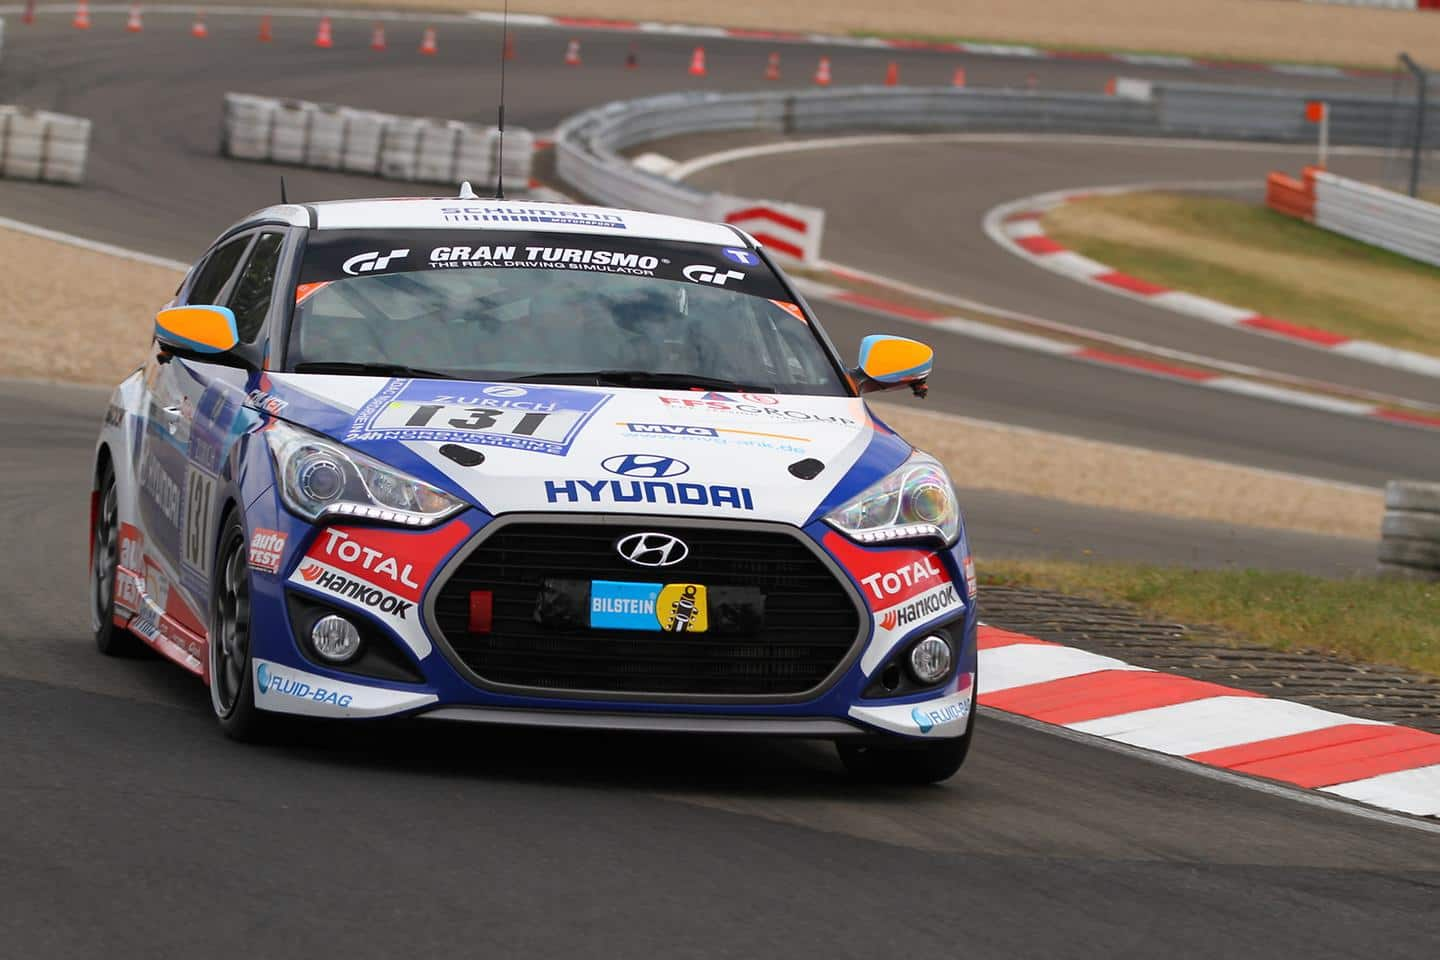 Hyundai Motor triumphs at Nurburgring 24 hour race with Veloster Turbo